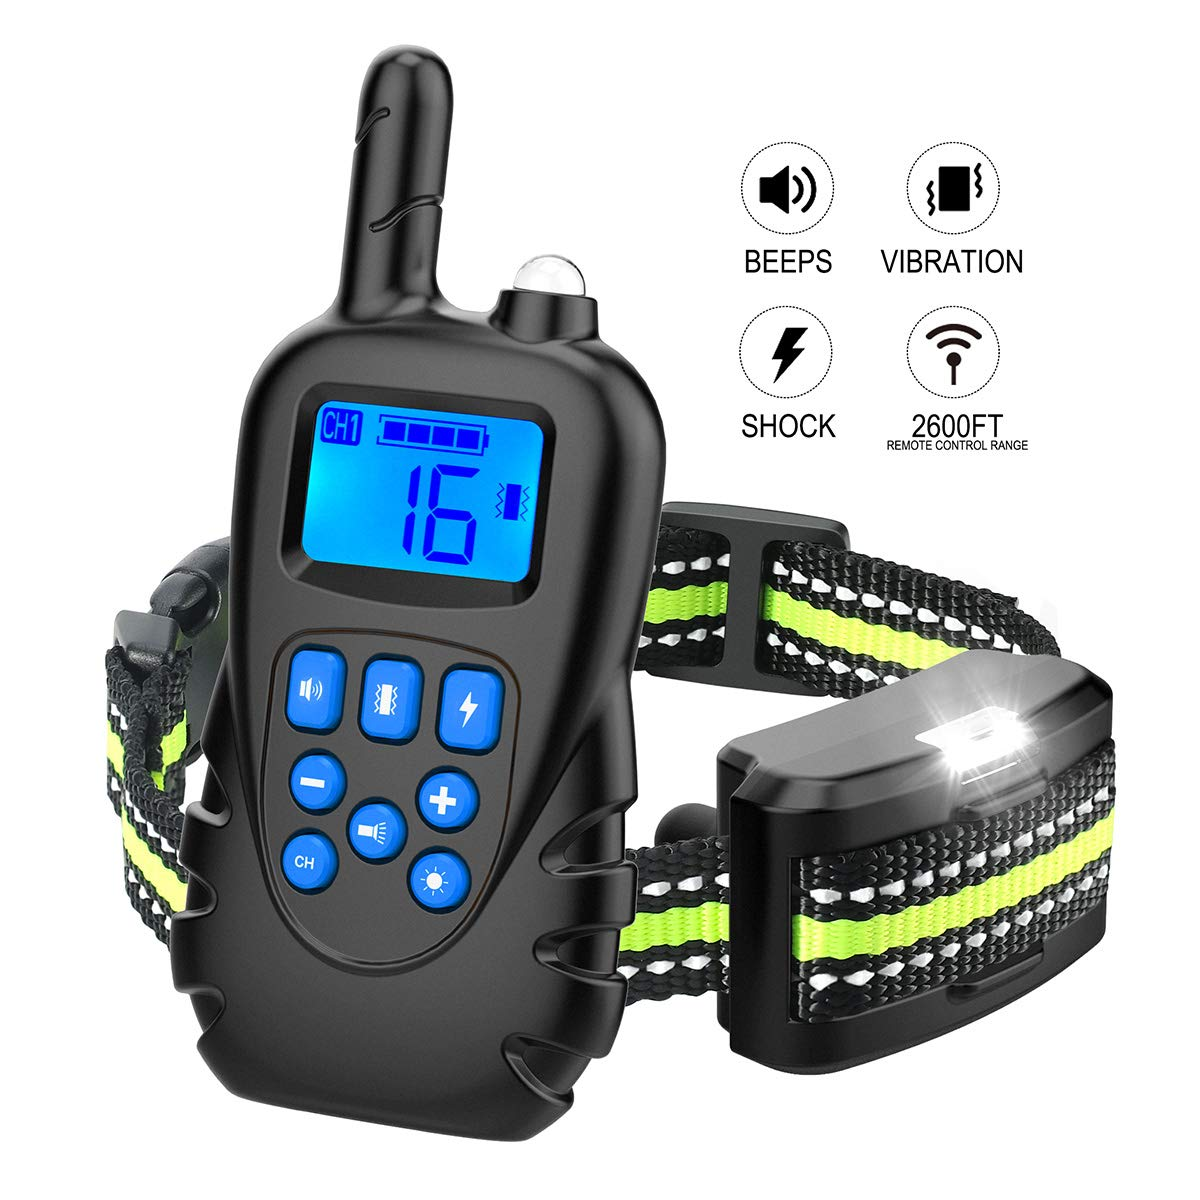 Allenker Dog Training Collar - Dog Shock Collar with Remote Up to 2600Ft Remote Range, 3 Training Modes: Beep Vibration Static Shock - 1~16 Vibration Shock Levels - Rechargeable Waterproof W/Charger